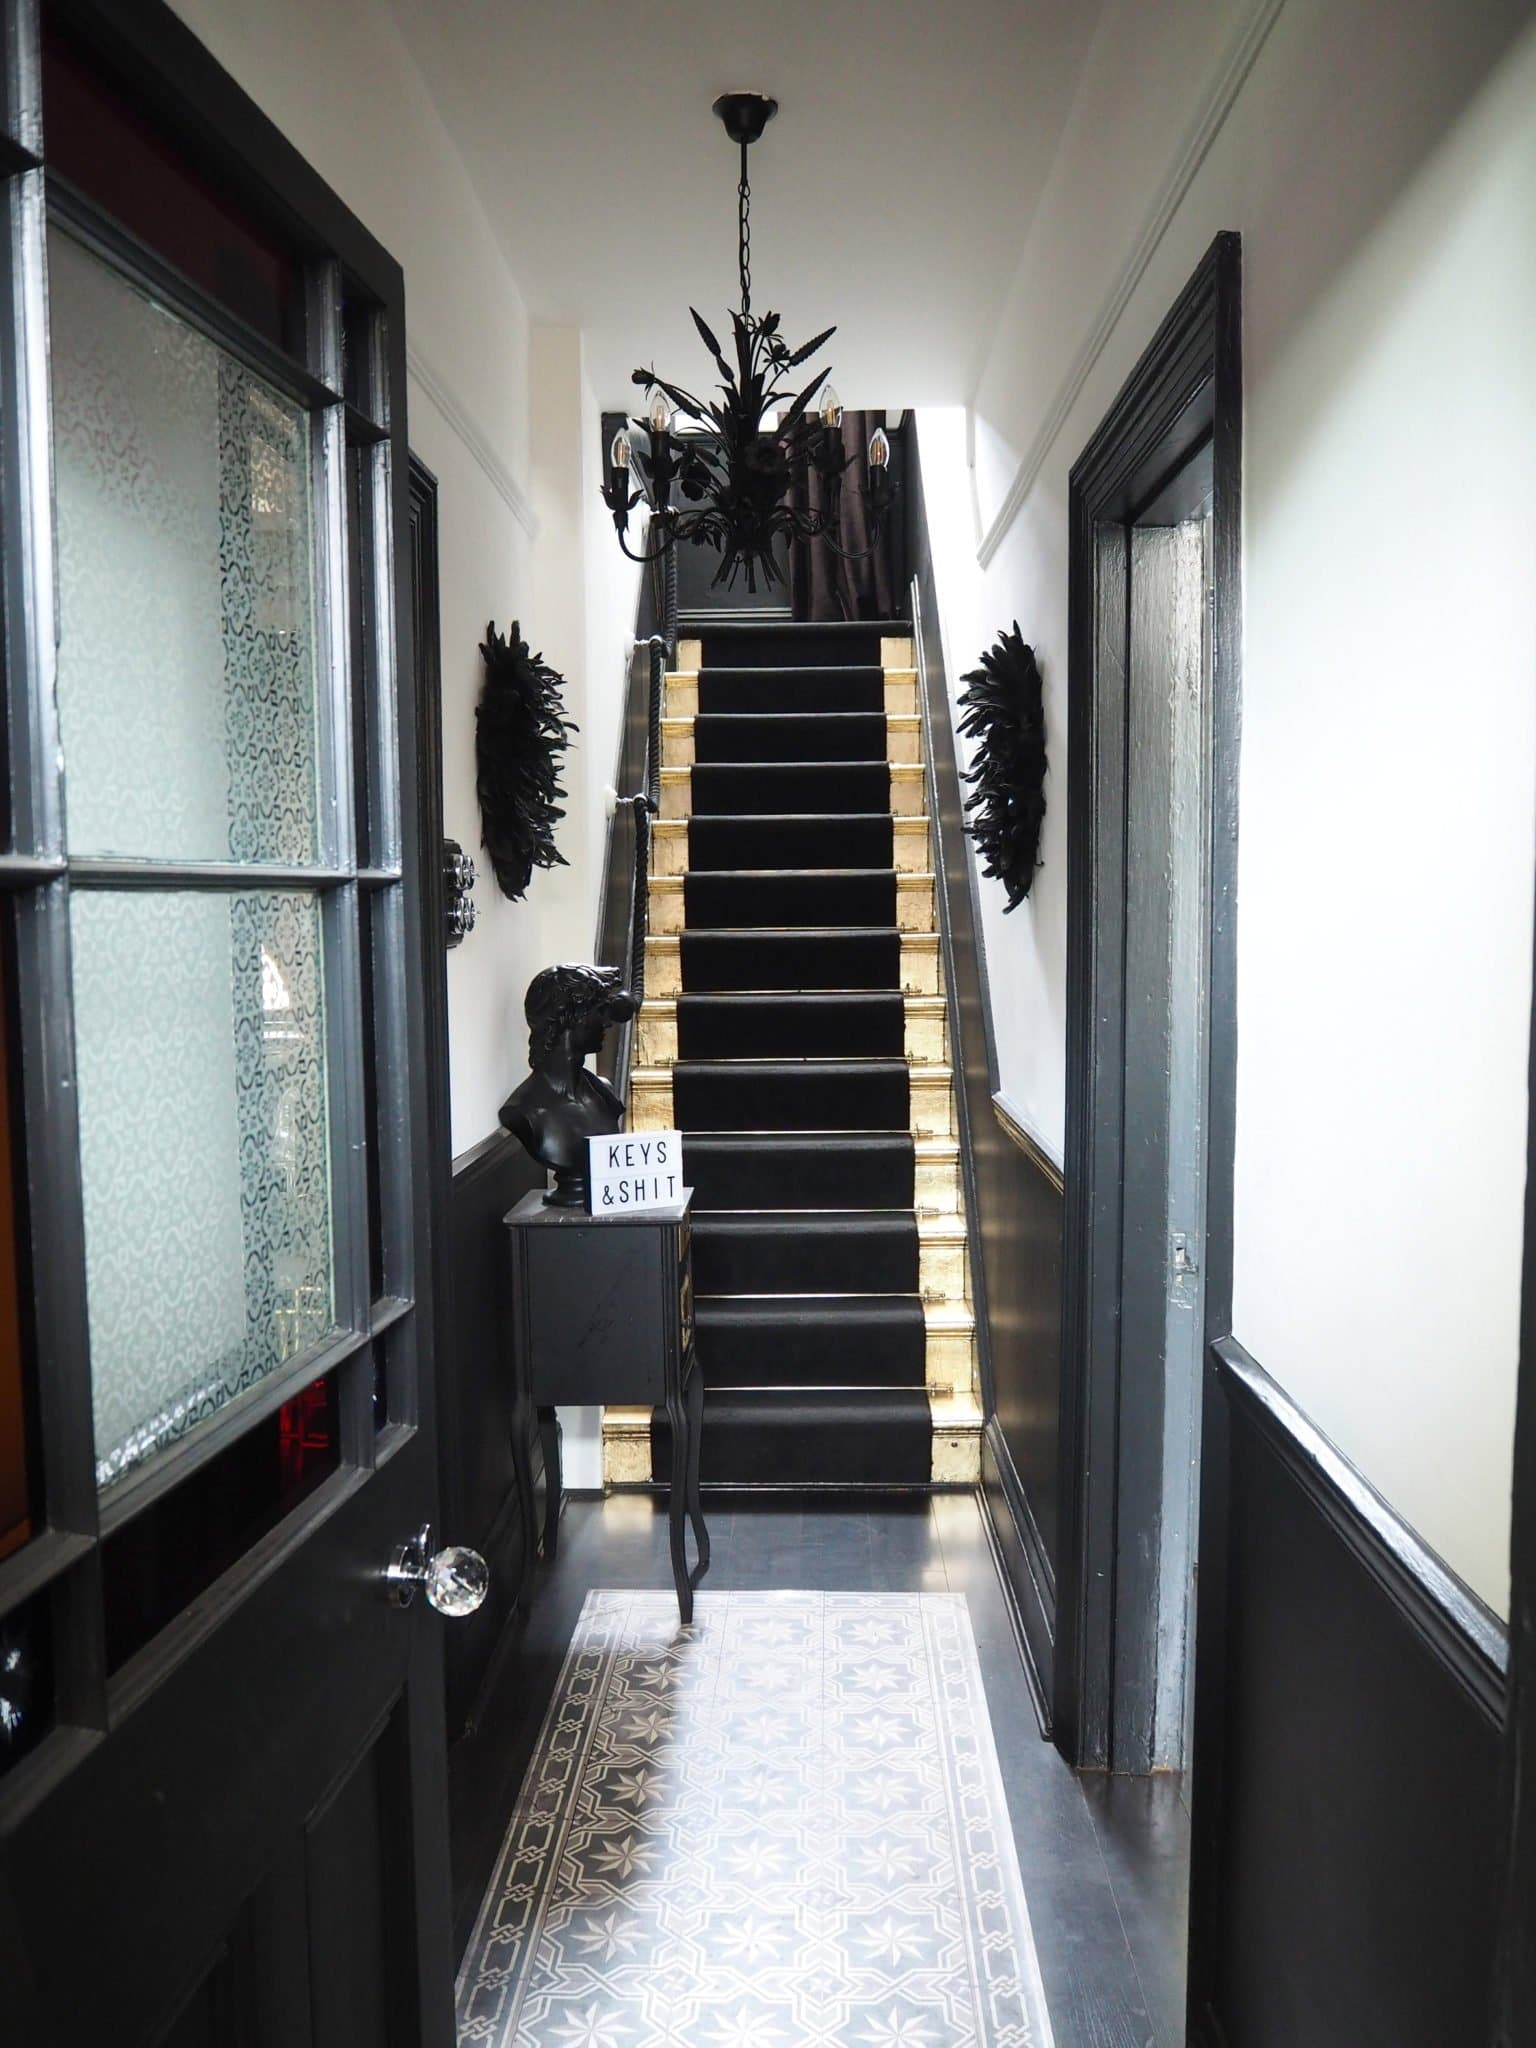 My Monochrome Hallway Makeover Reveal with Gilded Stairs